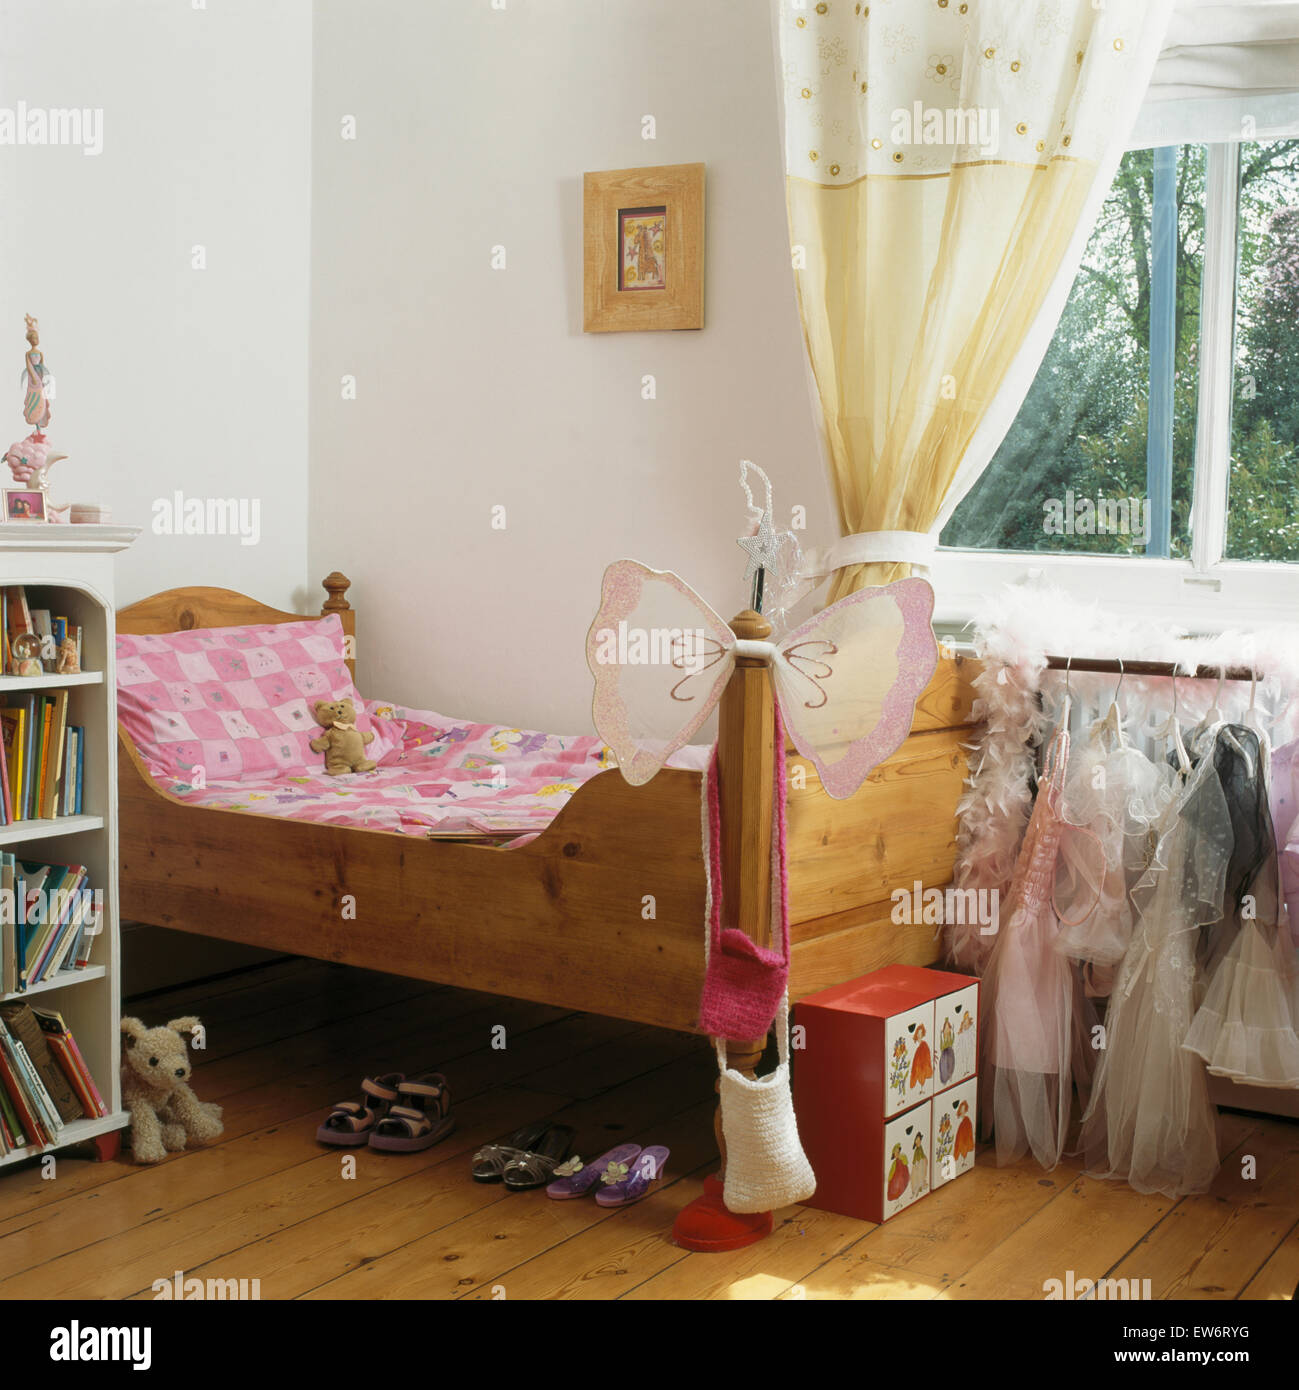 Pink bedlinen on child's pine bed in girl's bedroom with cream curtains on the window - Stock Image